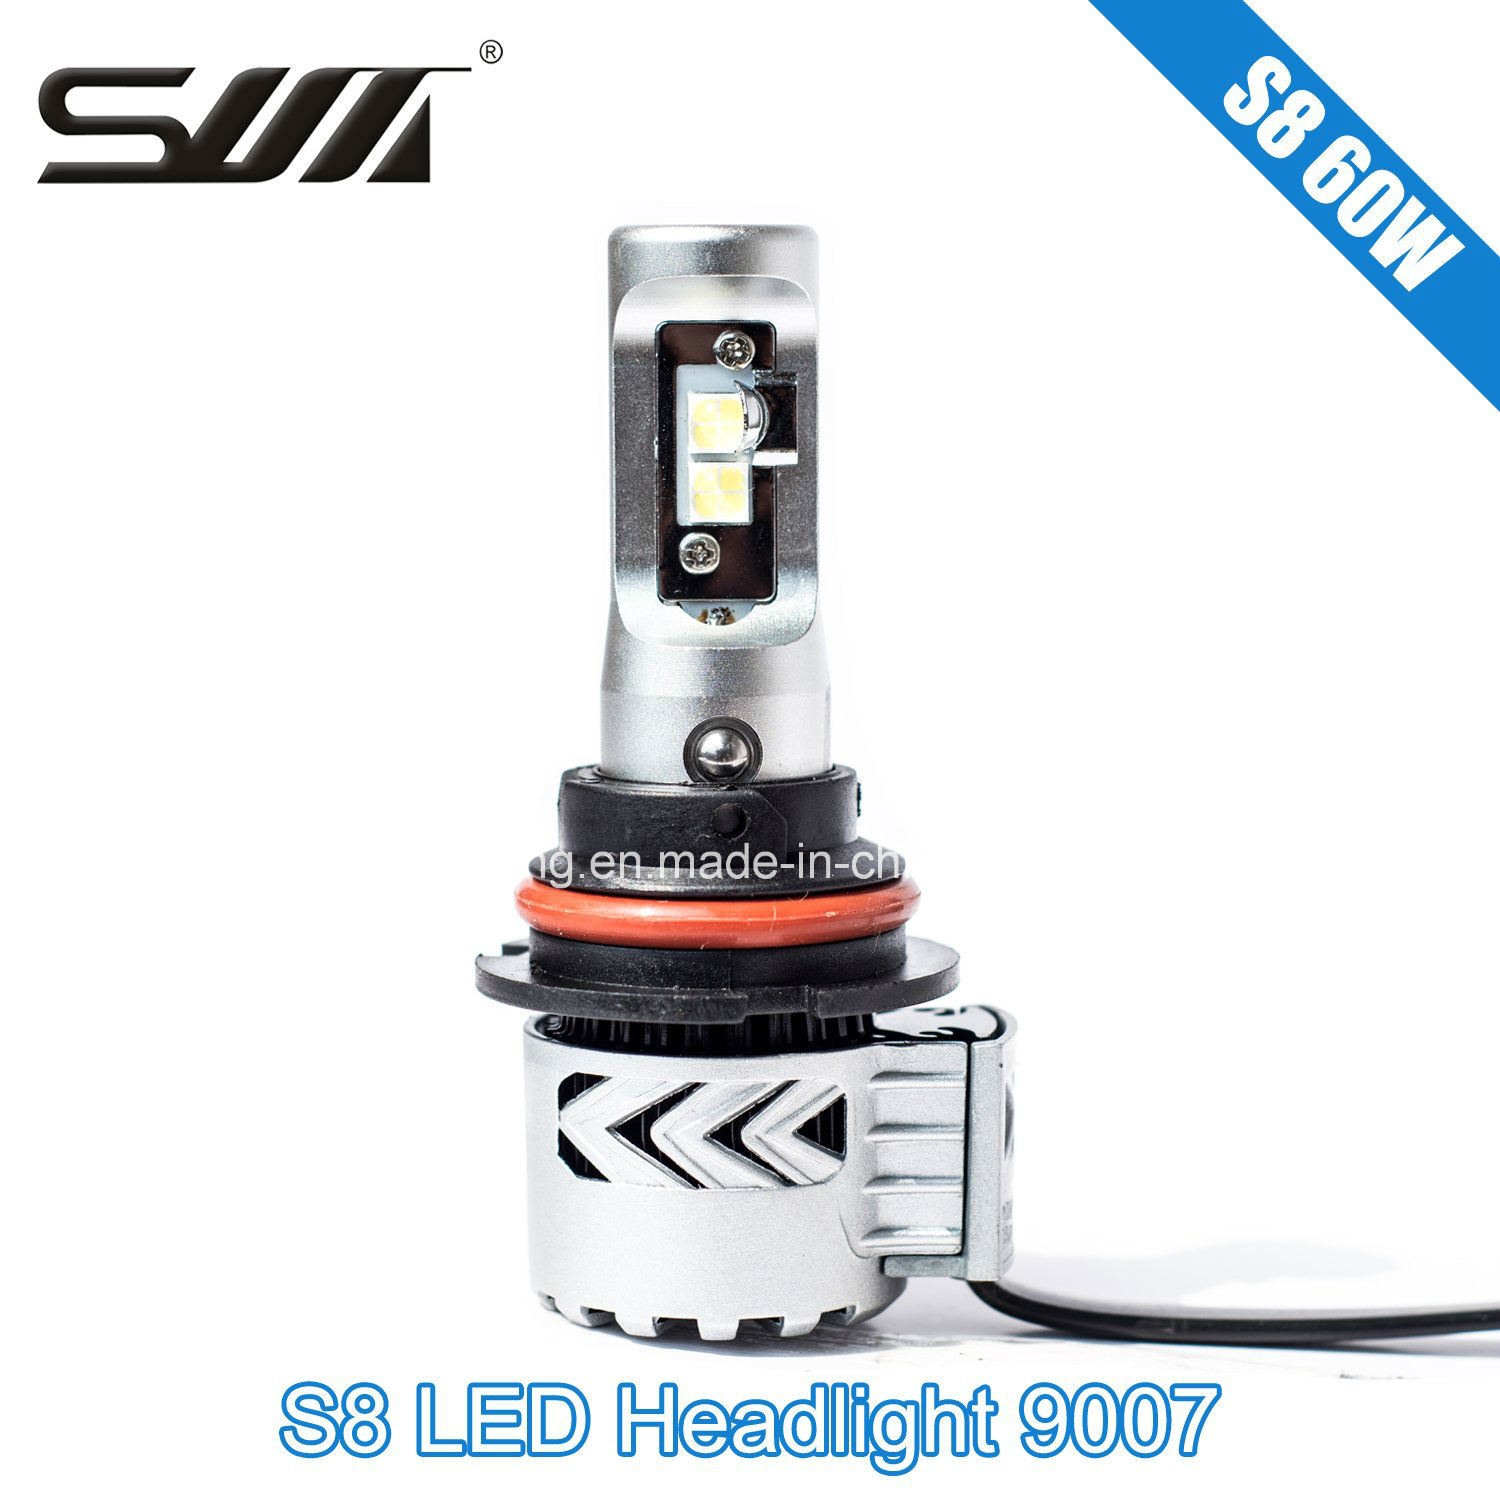 Hot Sell 60W S8 Car Light 9007/Hb5 LED Headlight Auto Headlight Kits